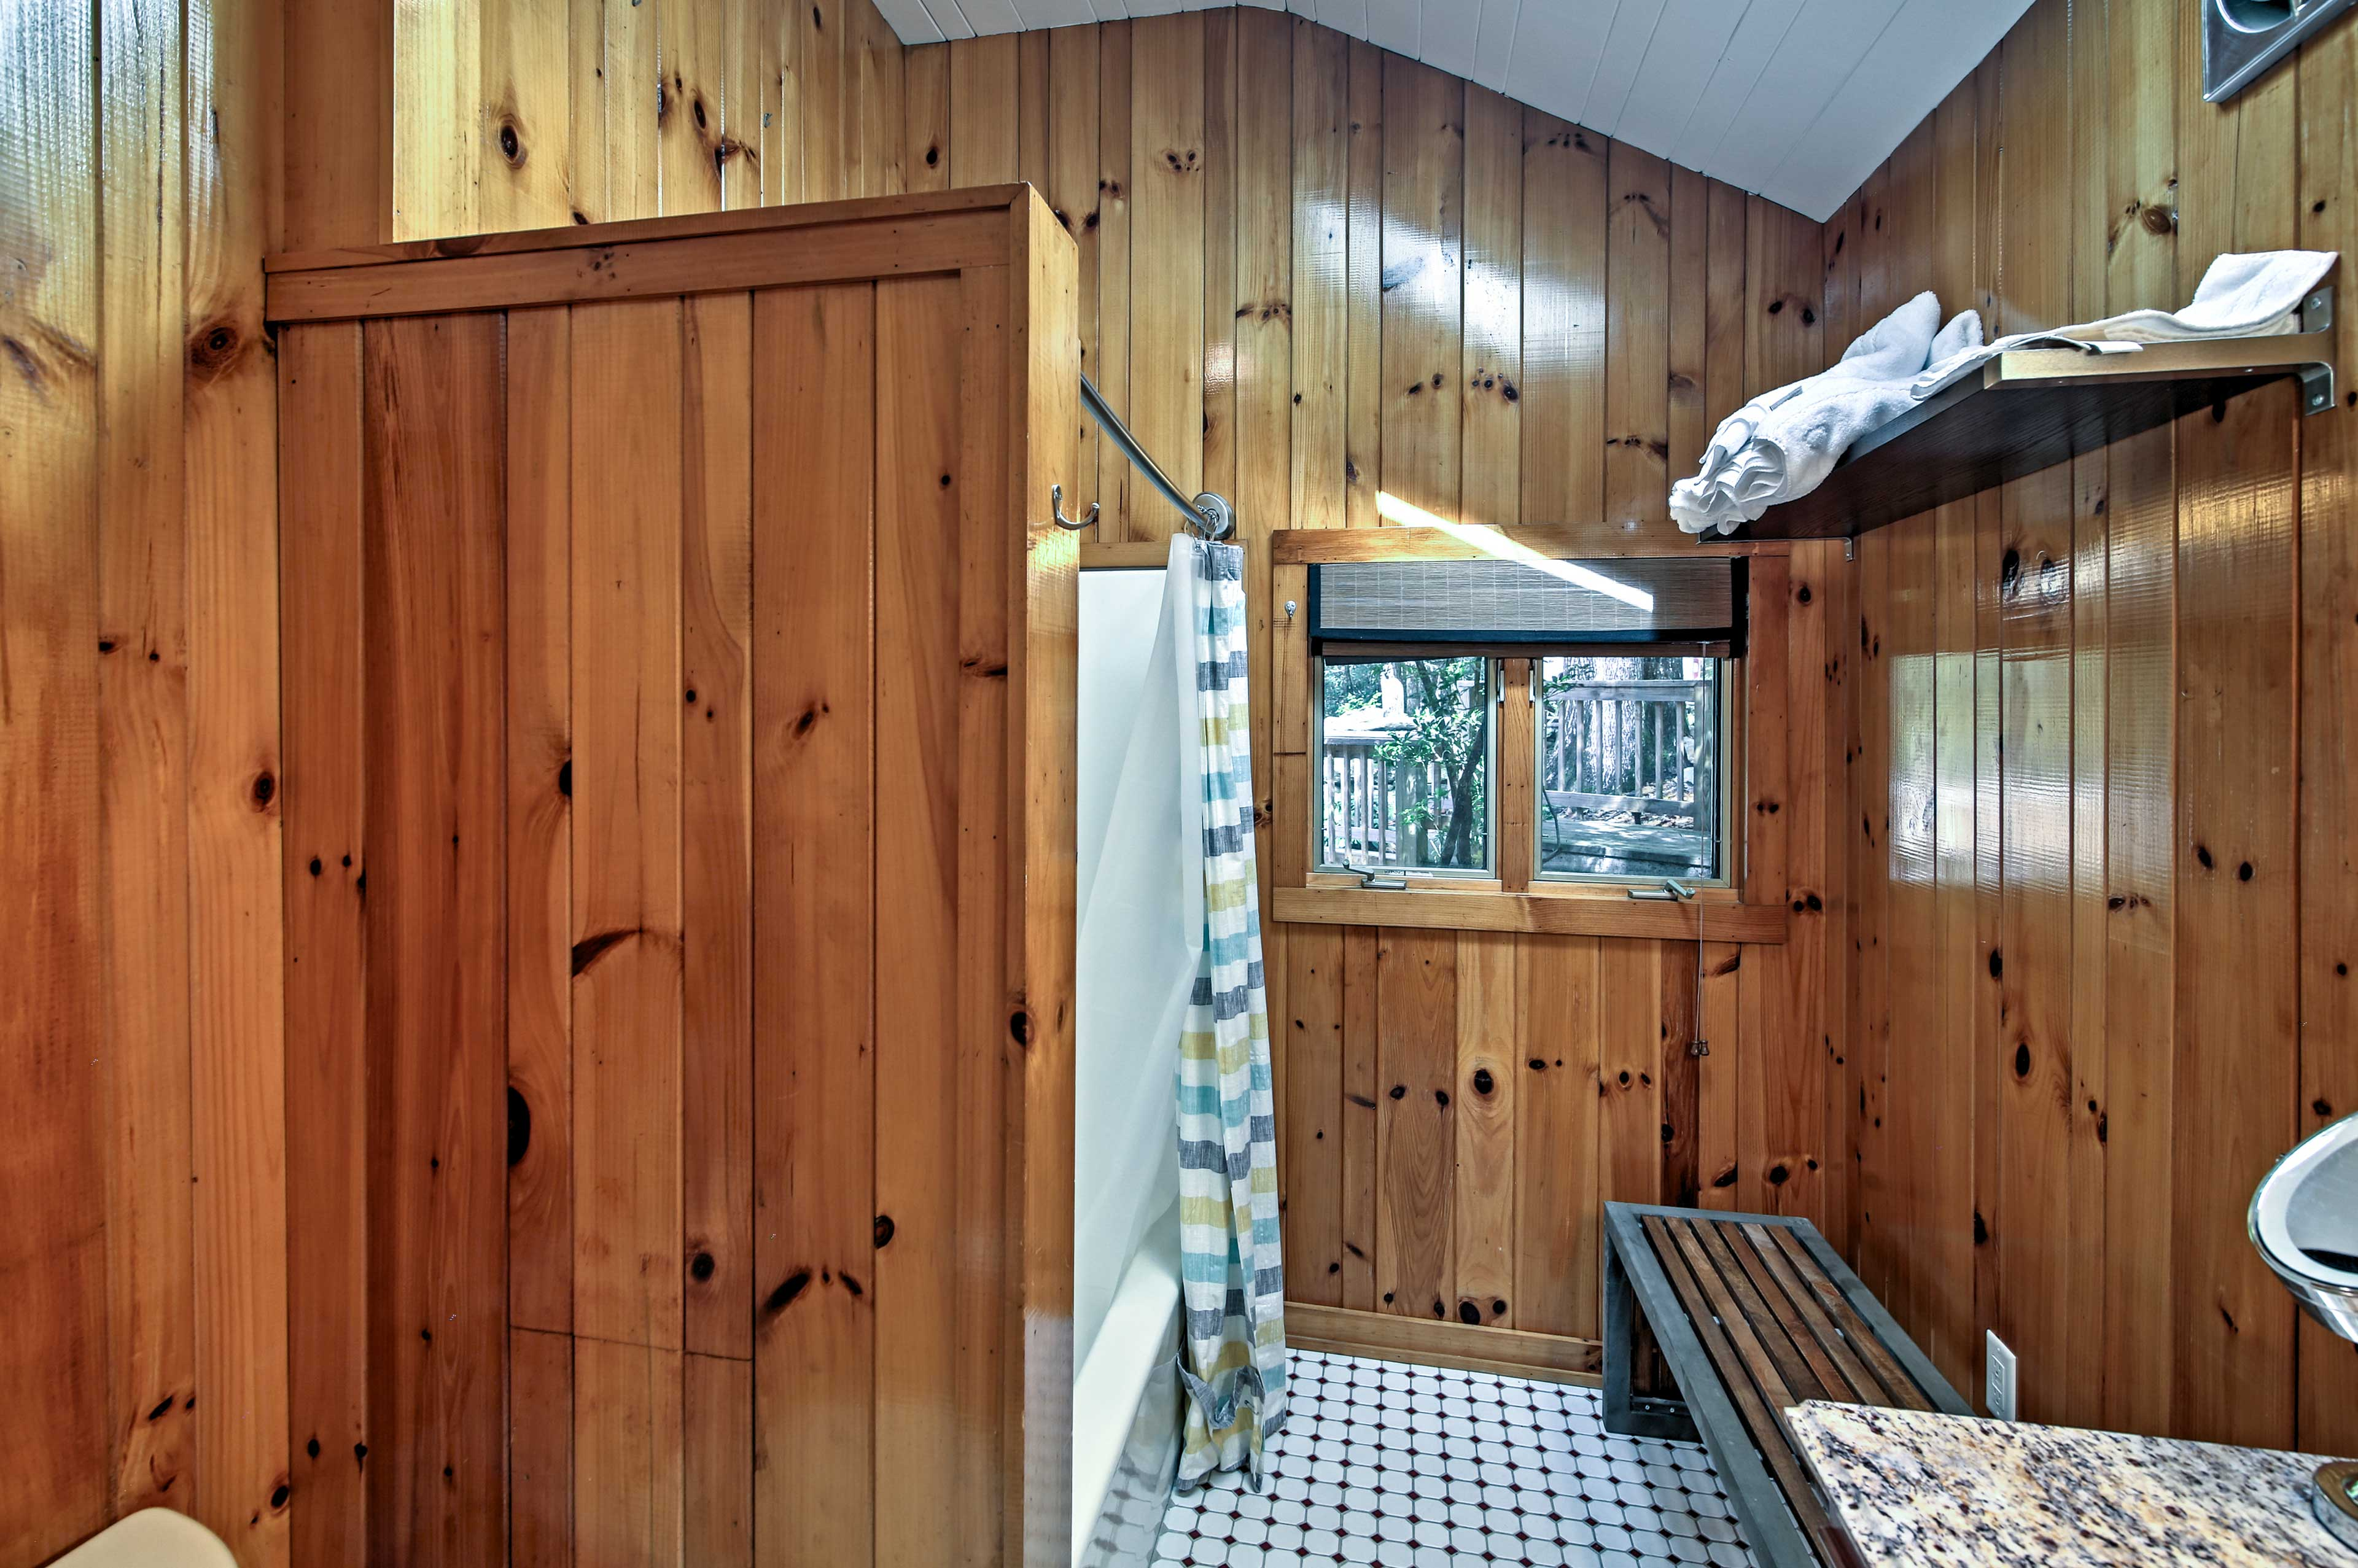 This second bathroom offers a spacious area to freshen up.